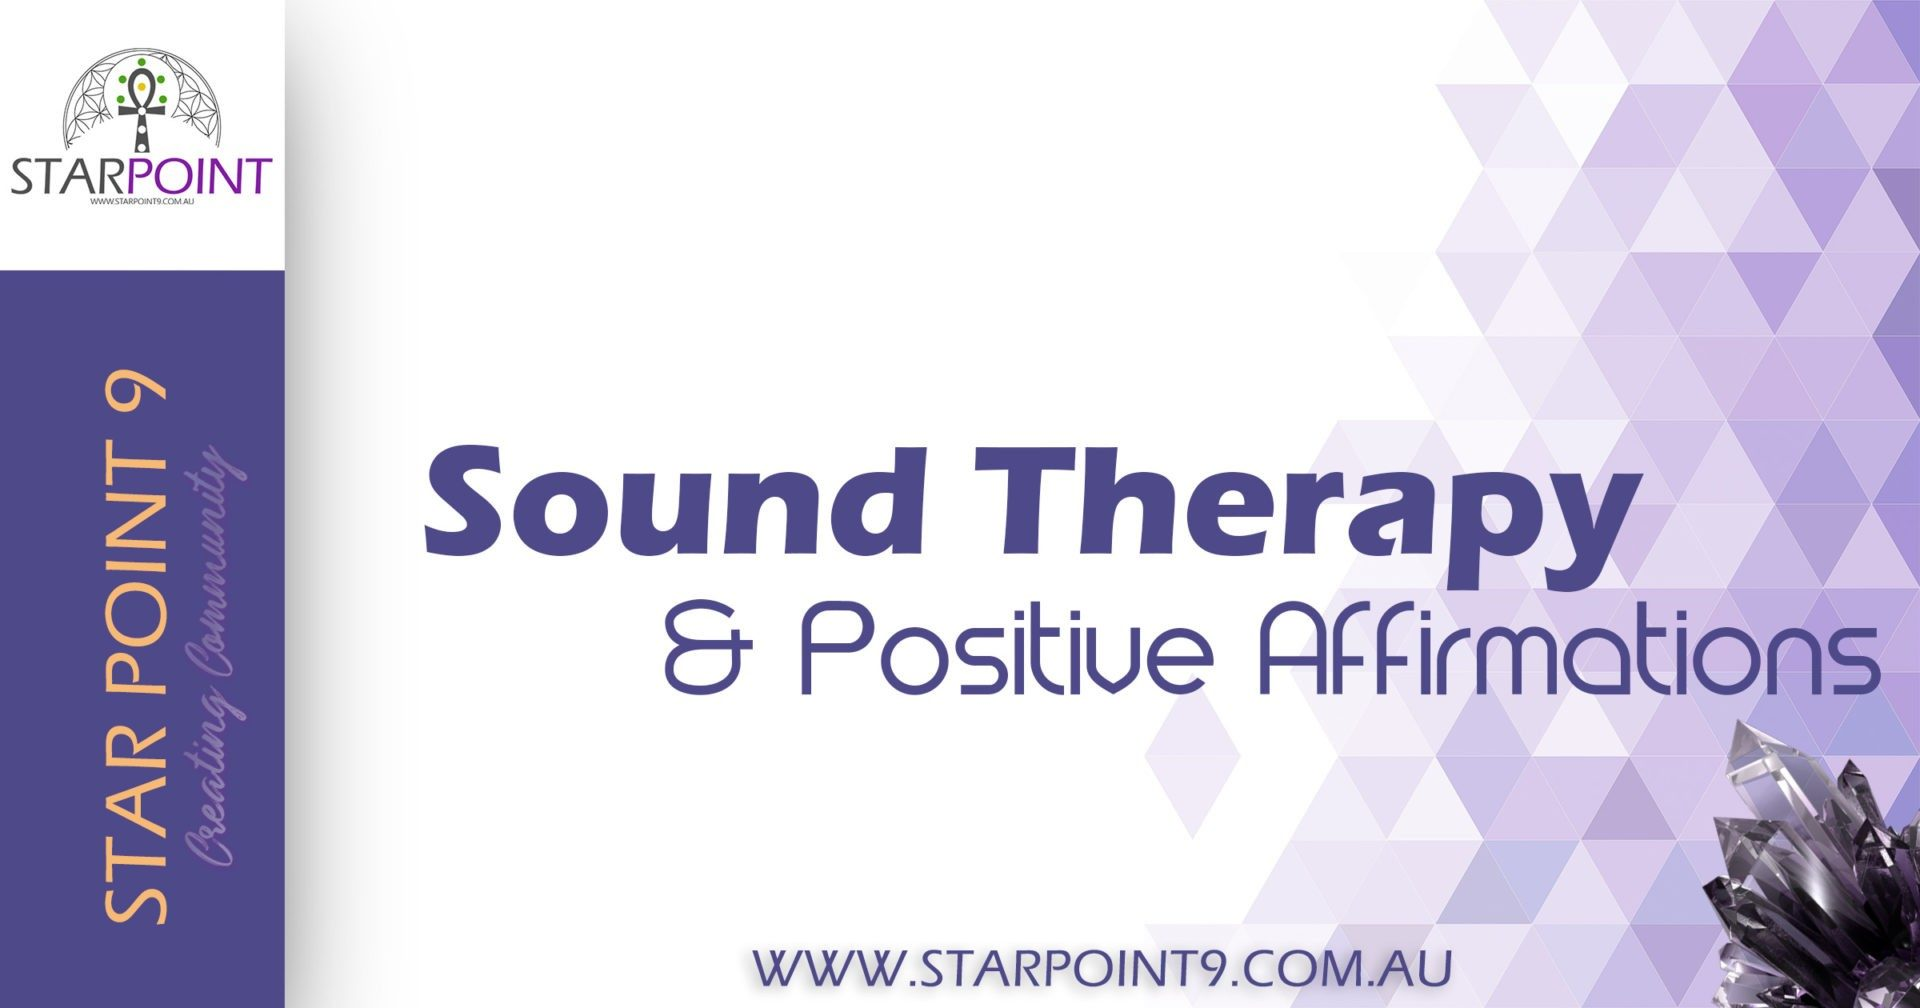 Sound Therapy & Positive Affirmations by Foundation to Wellness